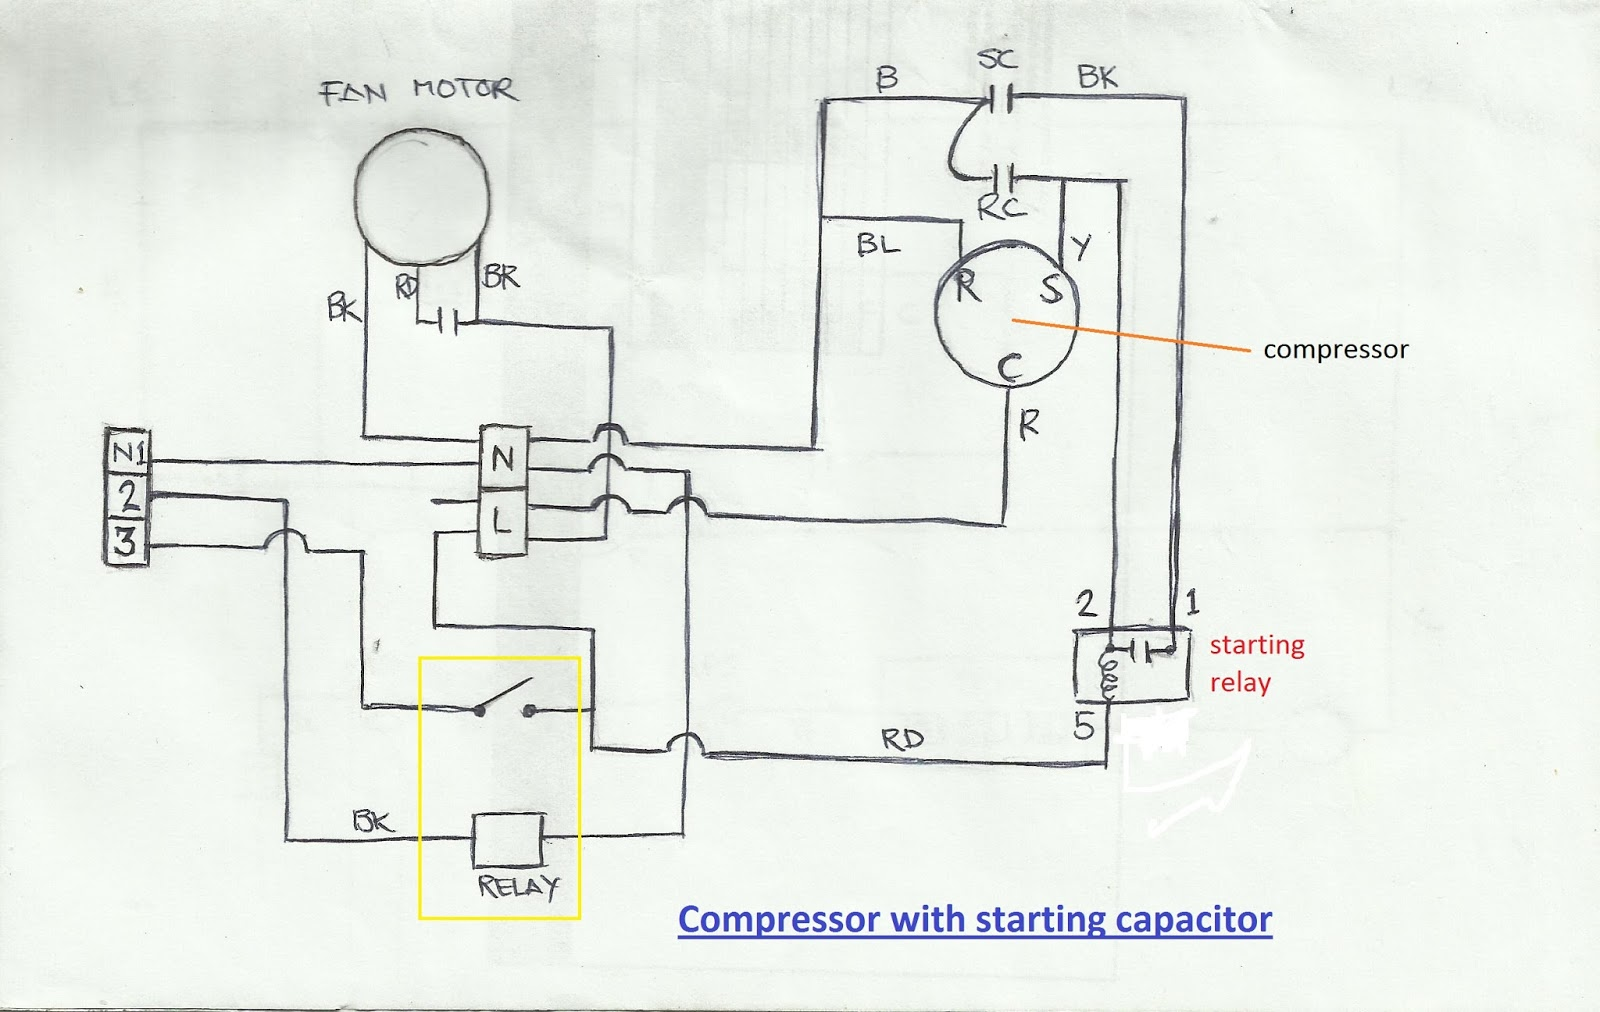 18 refrigeration and air conditioning repair wiring diagram of Single Phase Compressor Wiring Diagram at nearapp.co